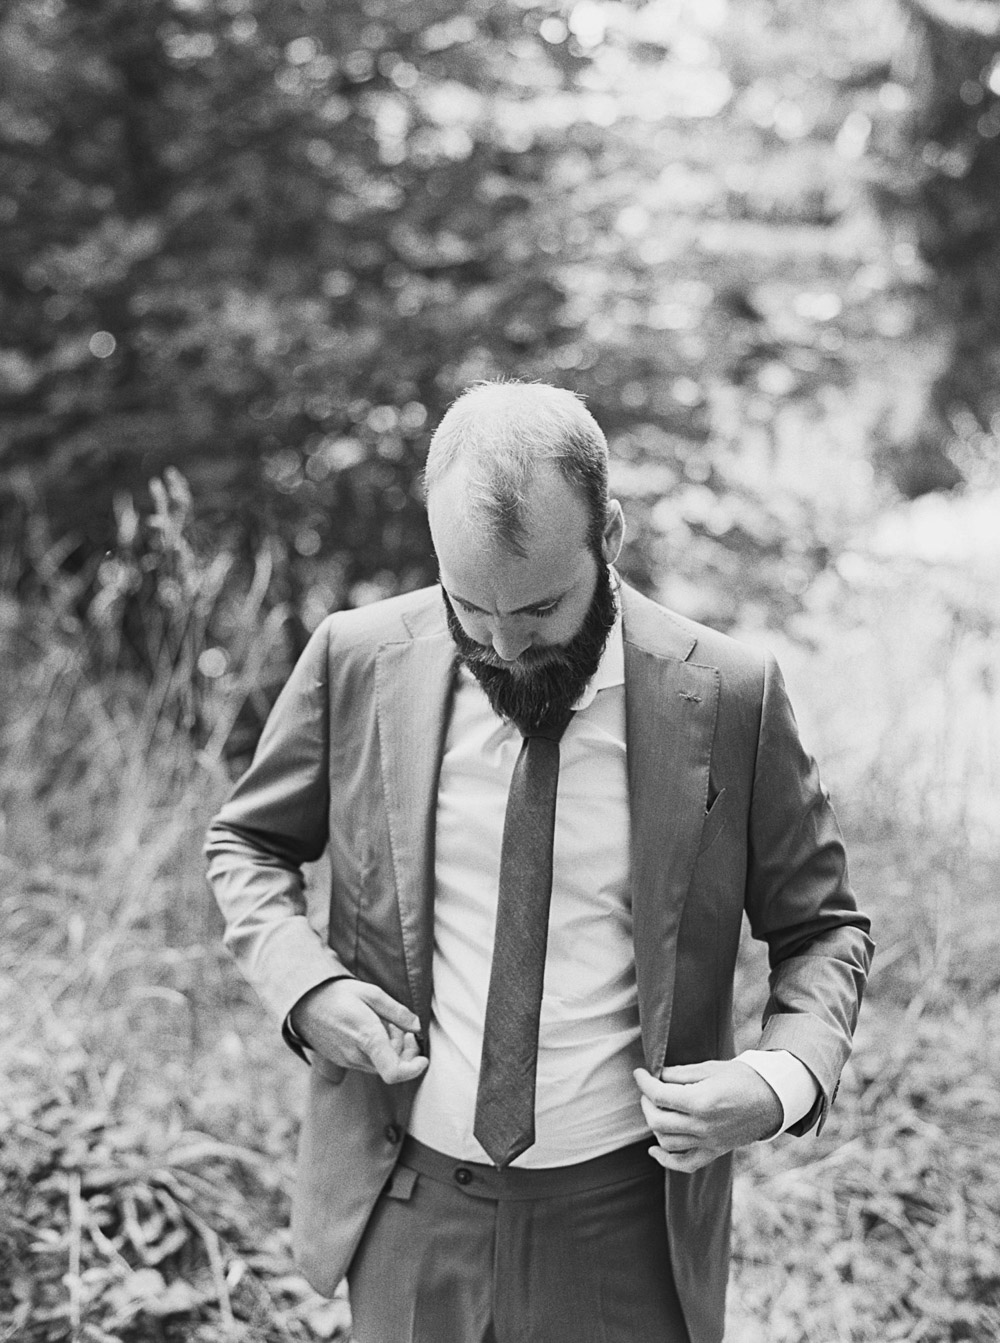 Seattle wedding photographer captures groom buttoning jacket at Wellspring Spa Wedding